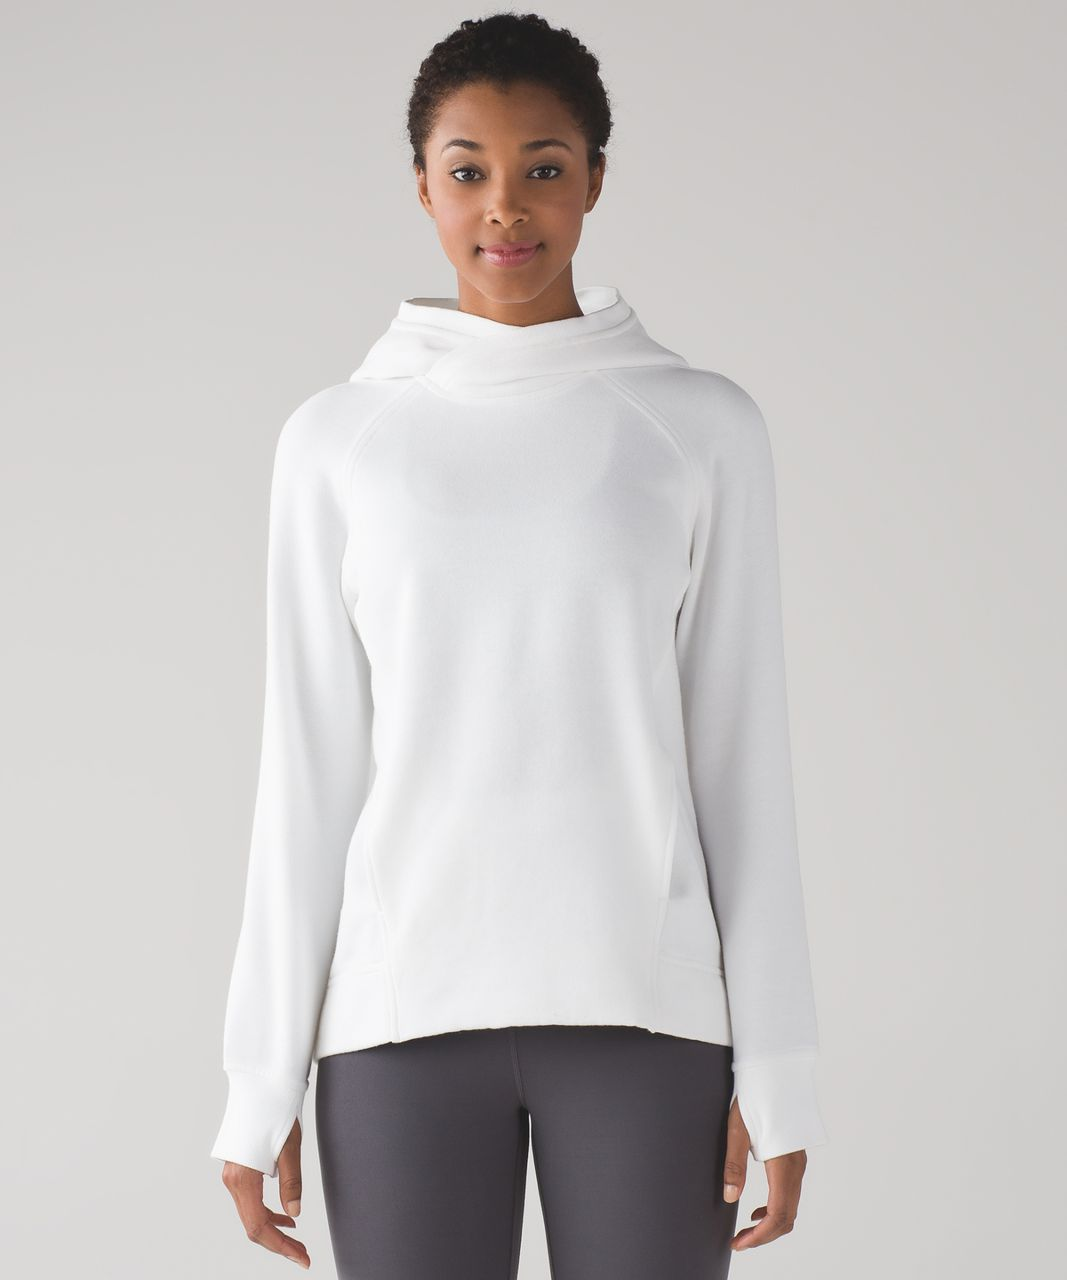 Lululemon Fleece Please Pullover - White - lulu fanatics